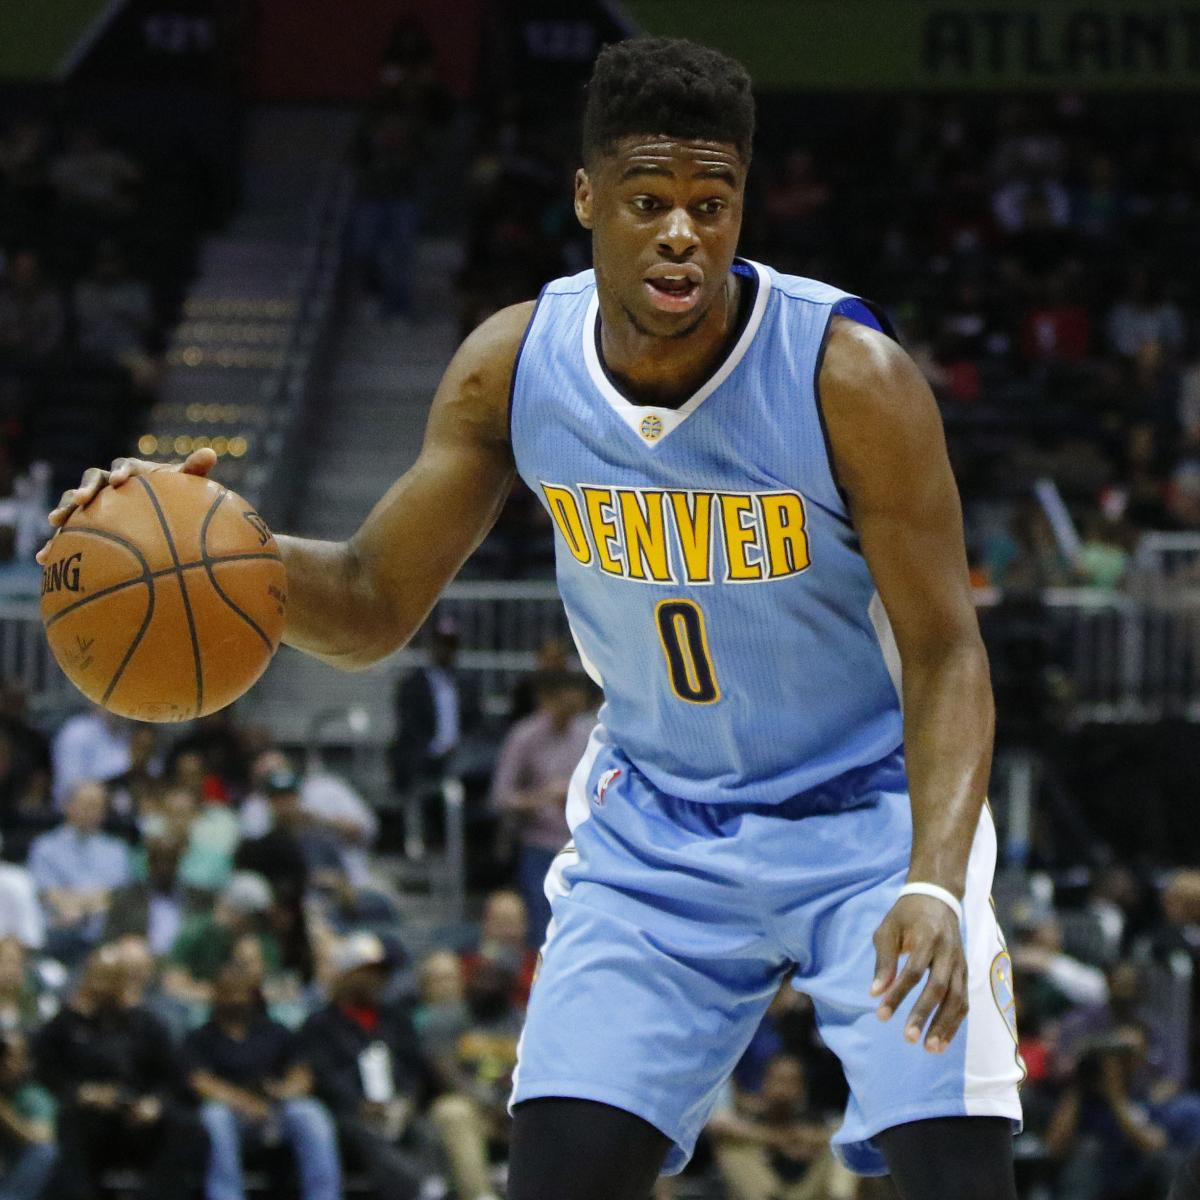 Denver Nuggets Banking On Young Stars, Healthy Vets To Be